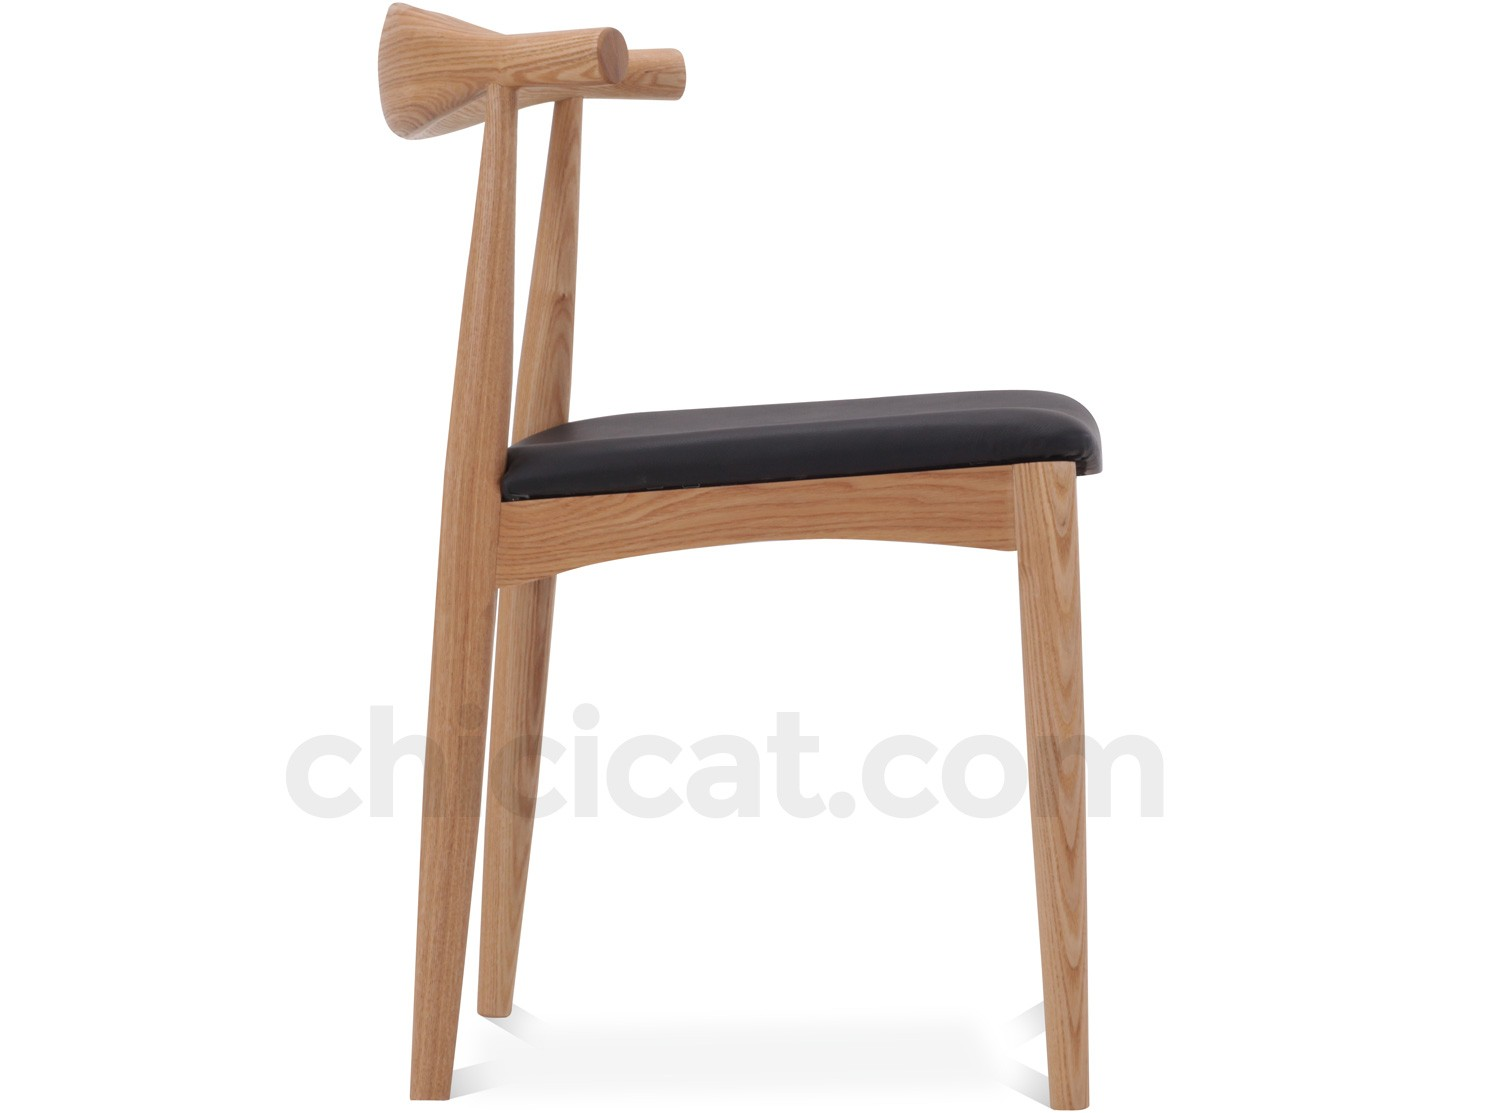 Wegner ch20 elbow chair platinum replica - Wegner wing chair replica ...